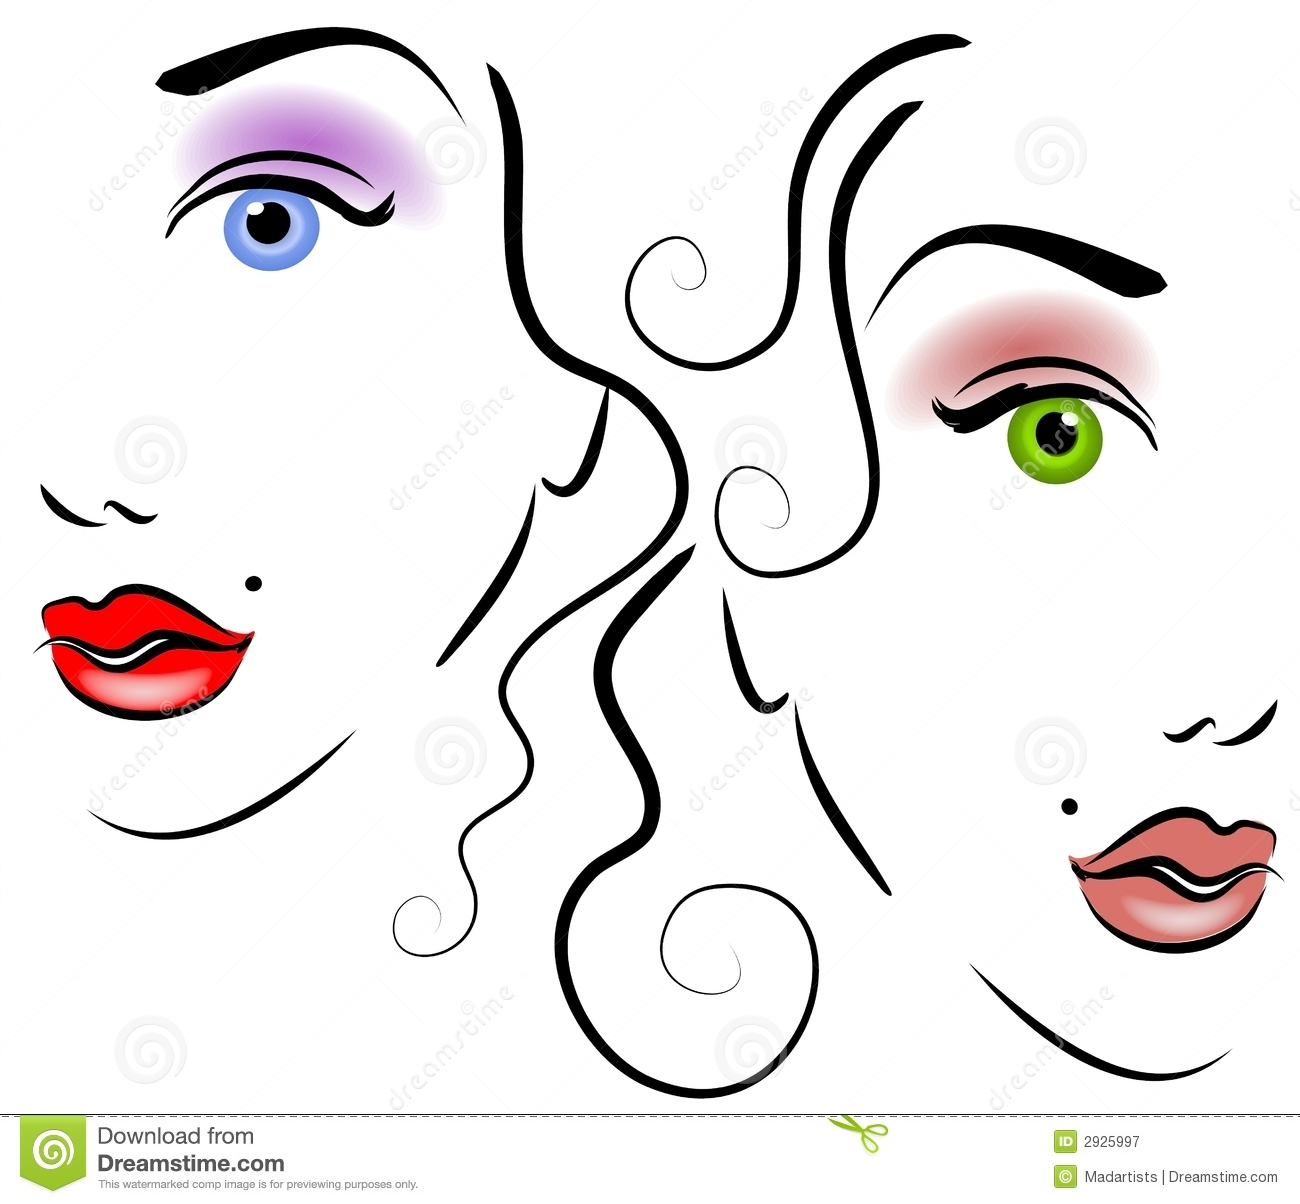 Faces Of Women Clip Art 2 Royalty Free Stock Photography   Image